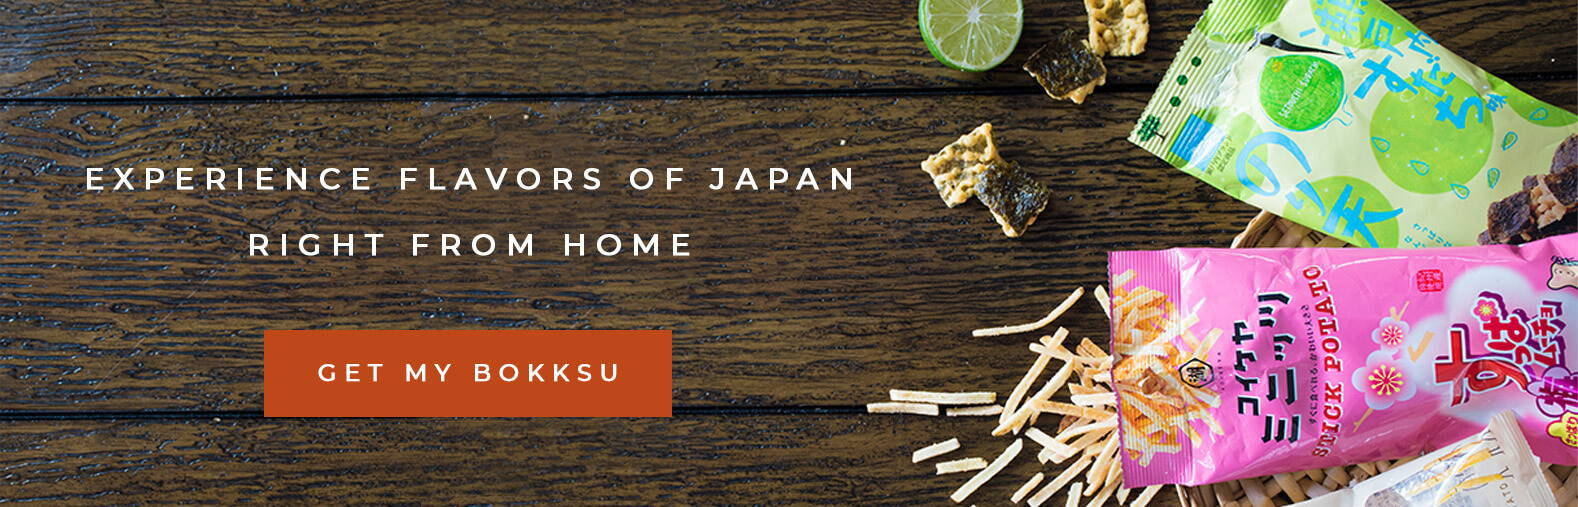 join bokksu japanese snack subscription box service today